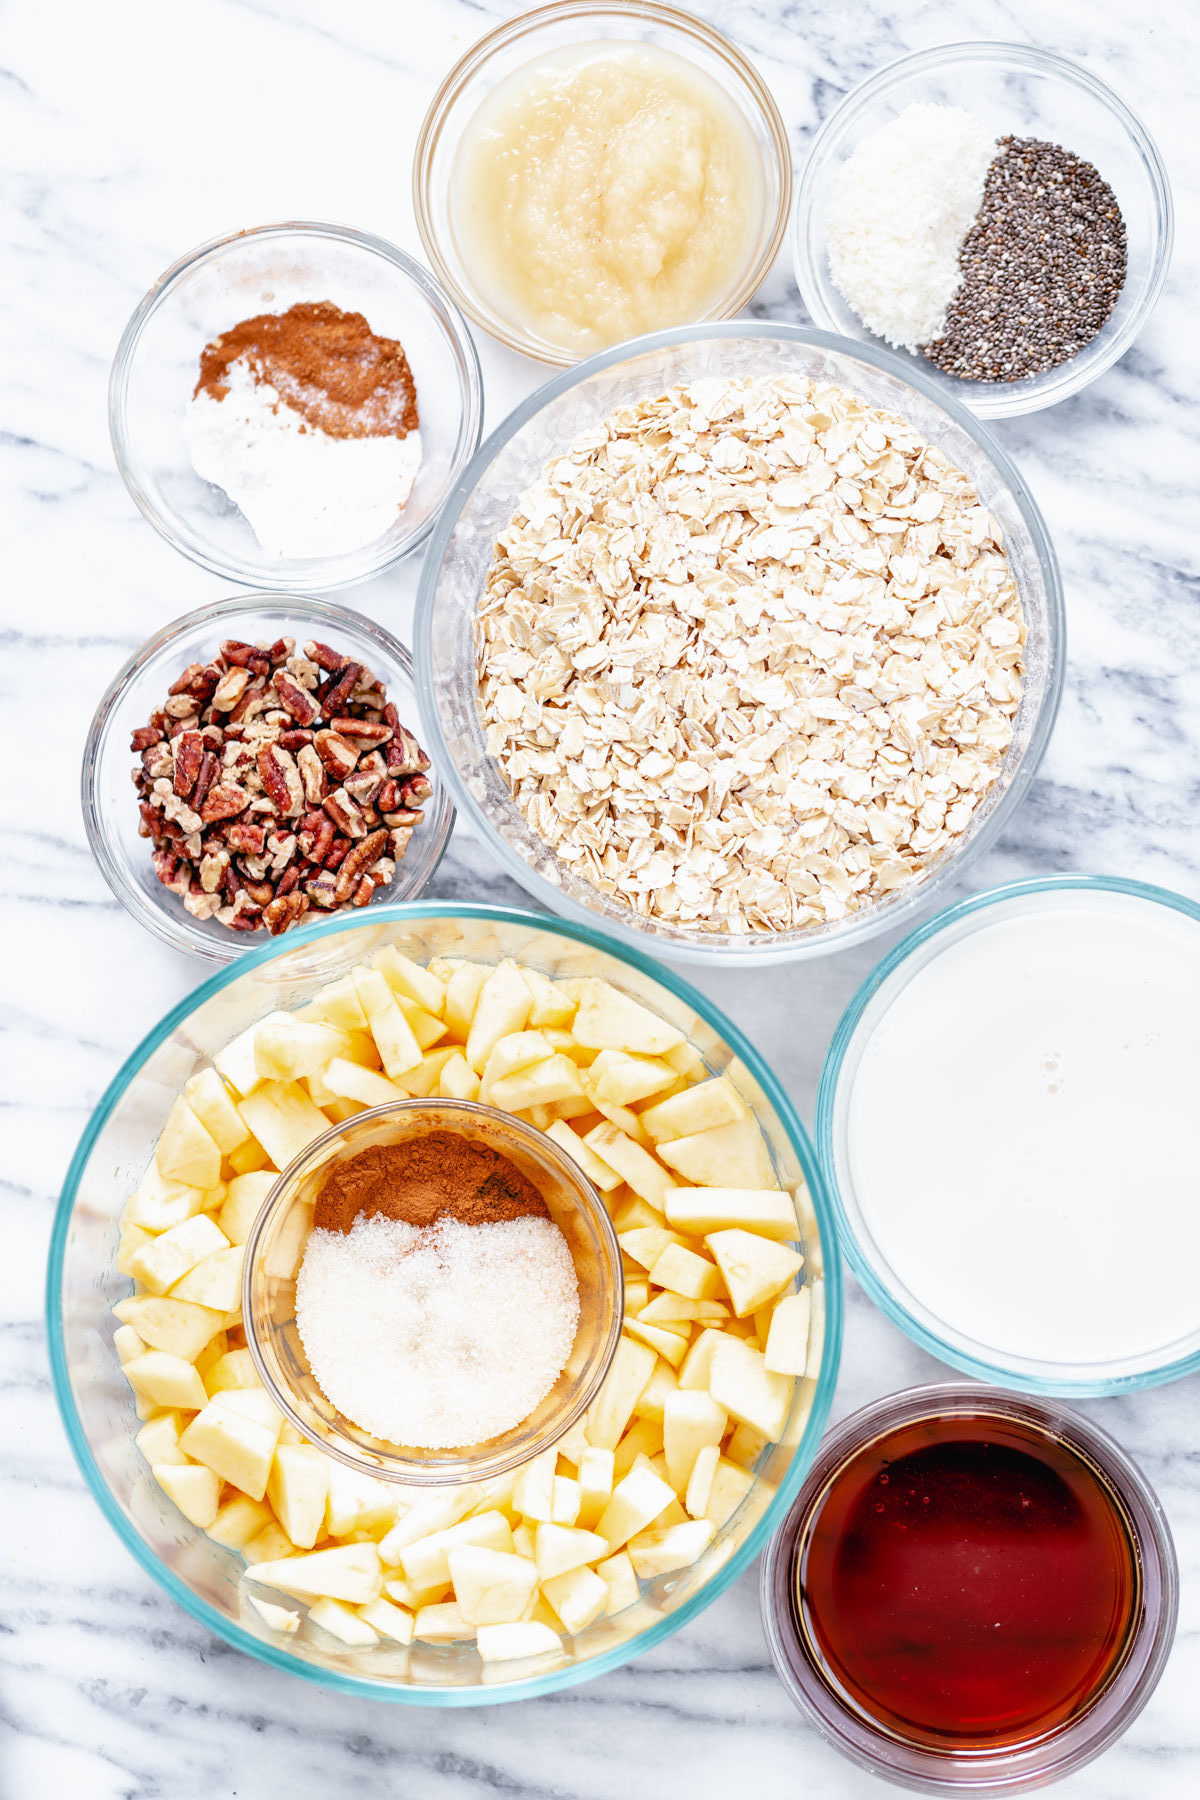 ingredients needed for making apple pie baked oatmeal